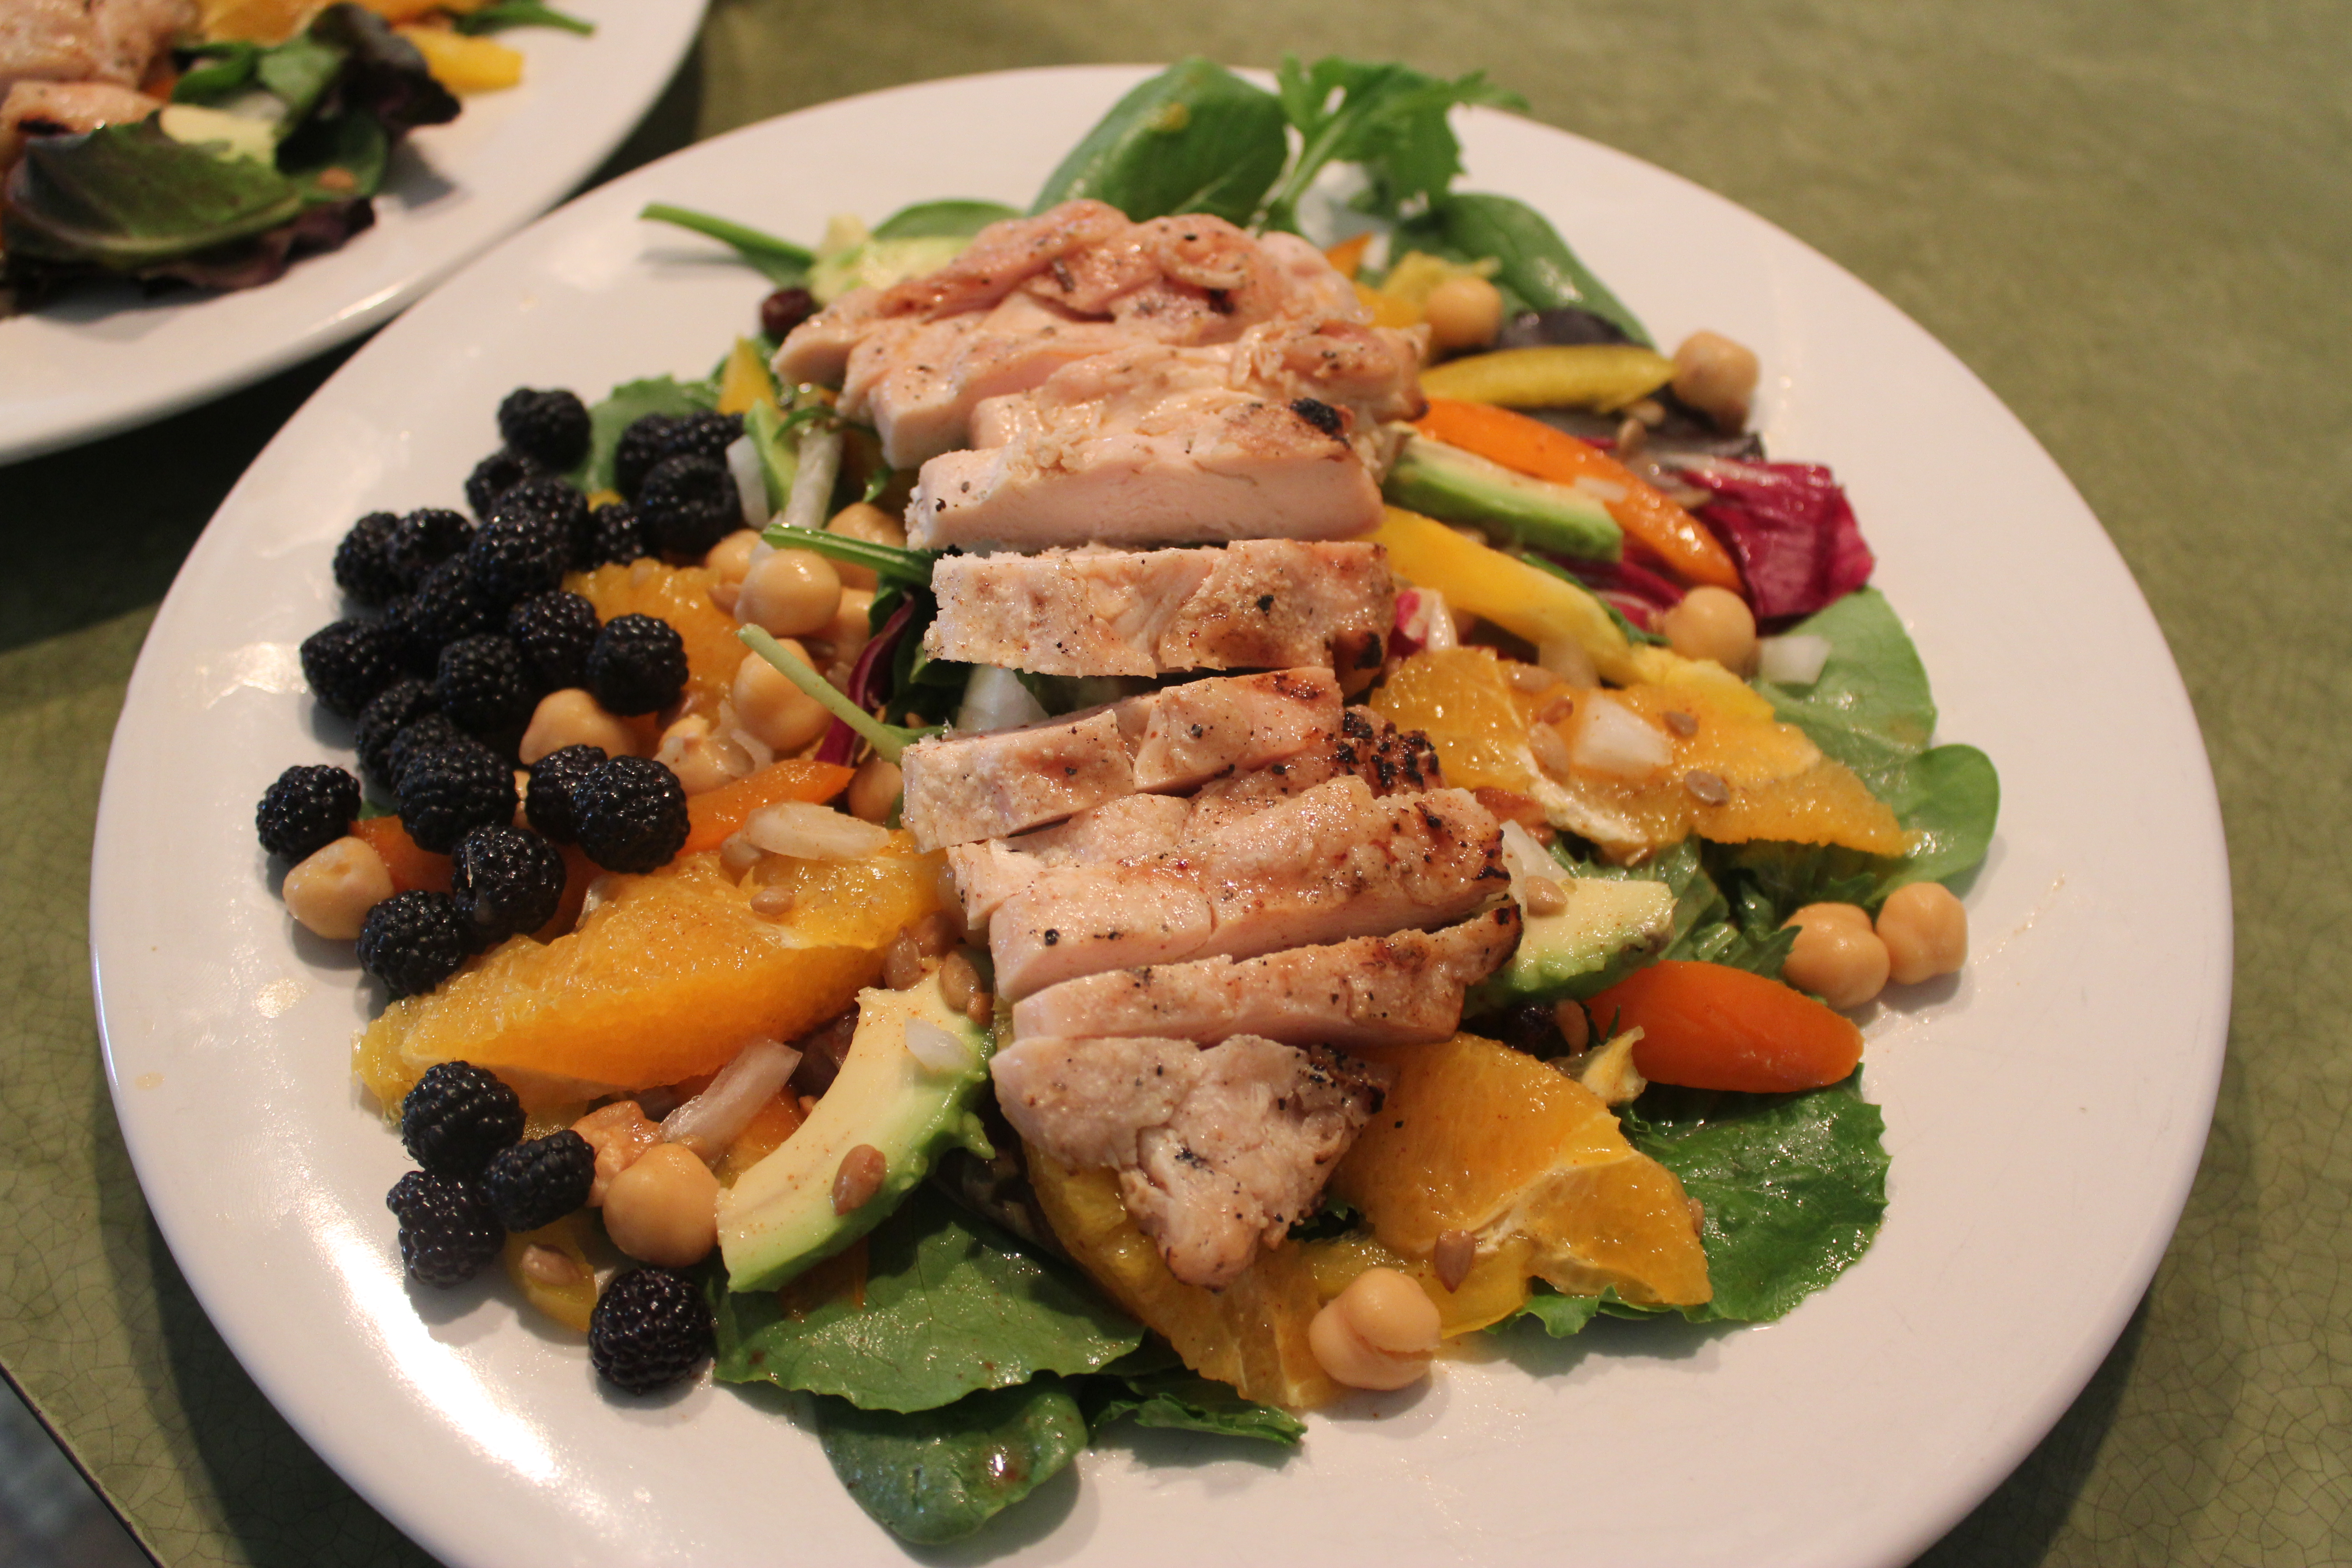 Orange Spice Grilled Chicken Mixed Greens Salad   Red Fox Fitness